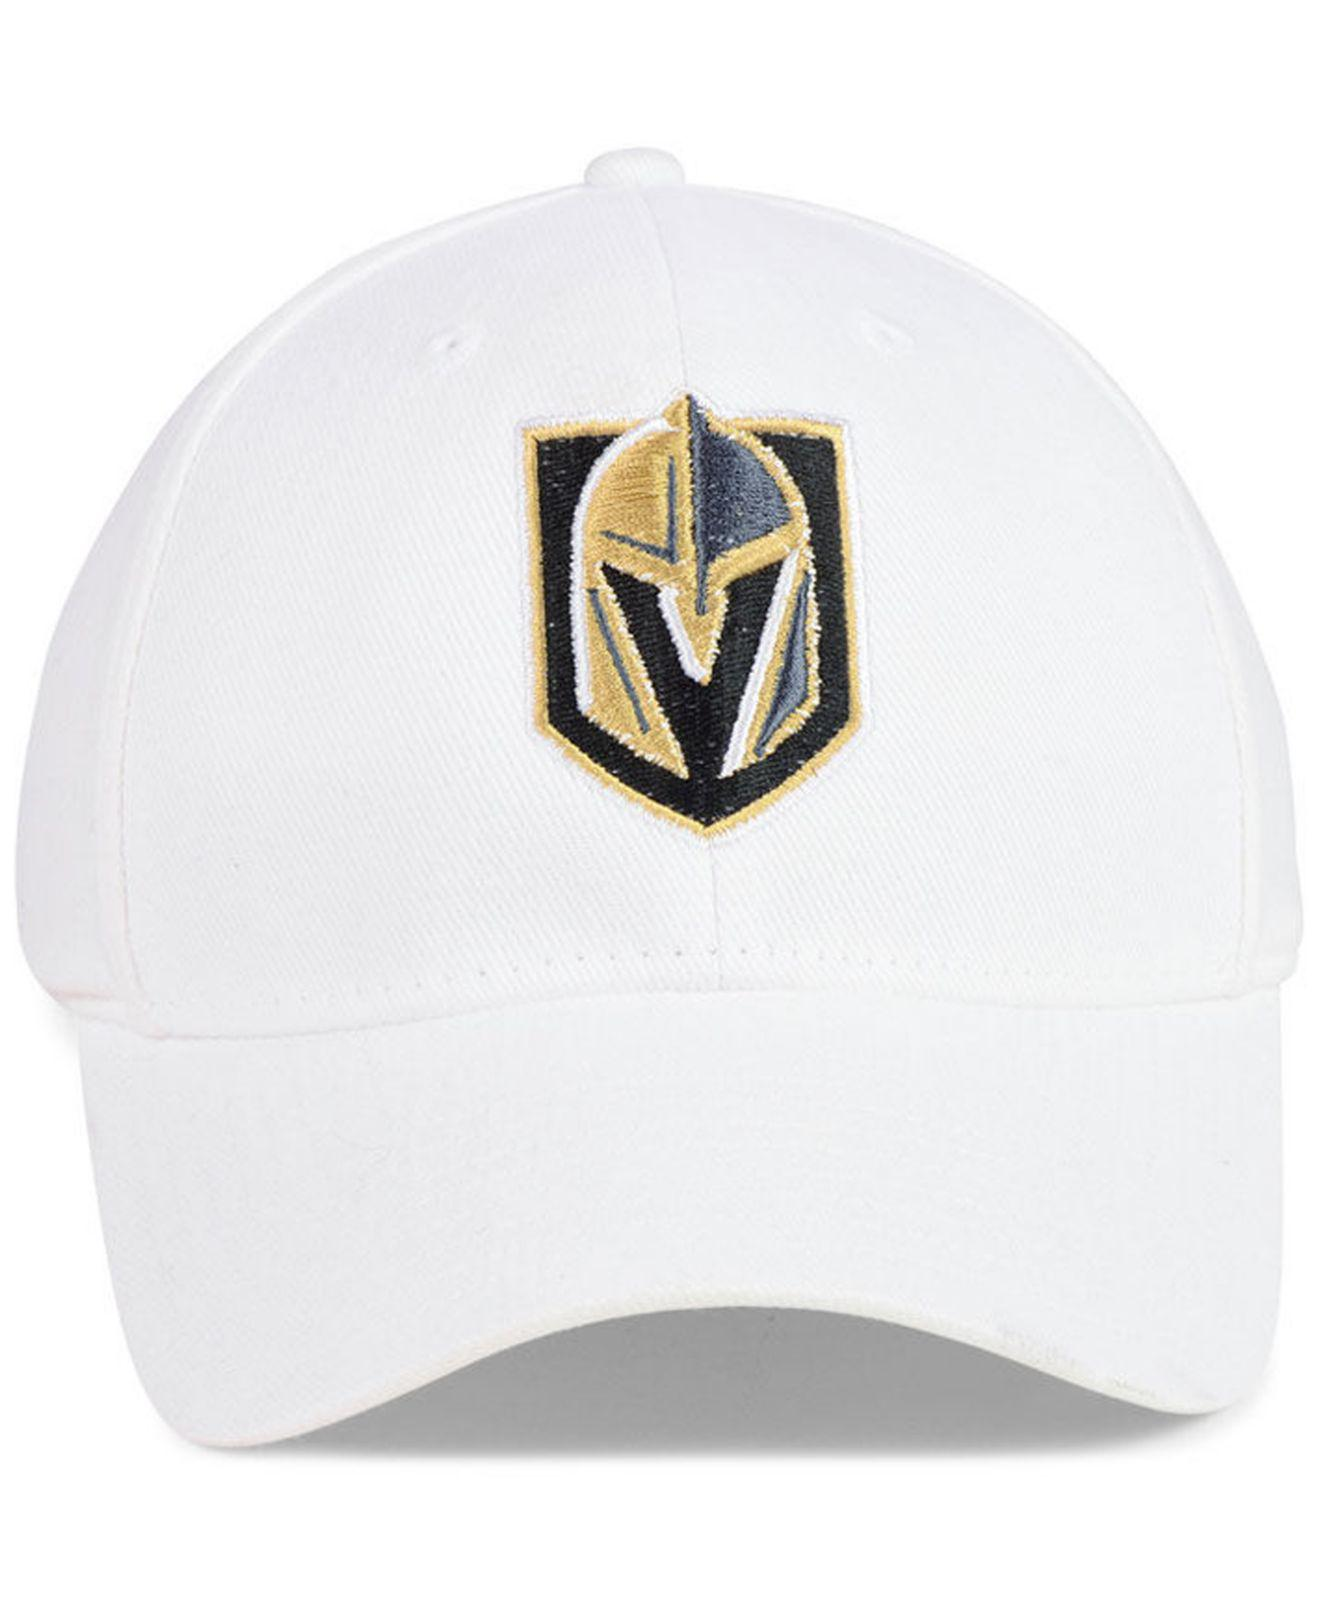 53c89d7c264 Lyst - adidas Vegas Golden Knights Core Flex Stretch Fitted Cap in White  for Men